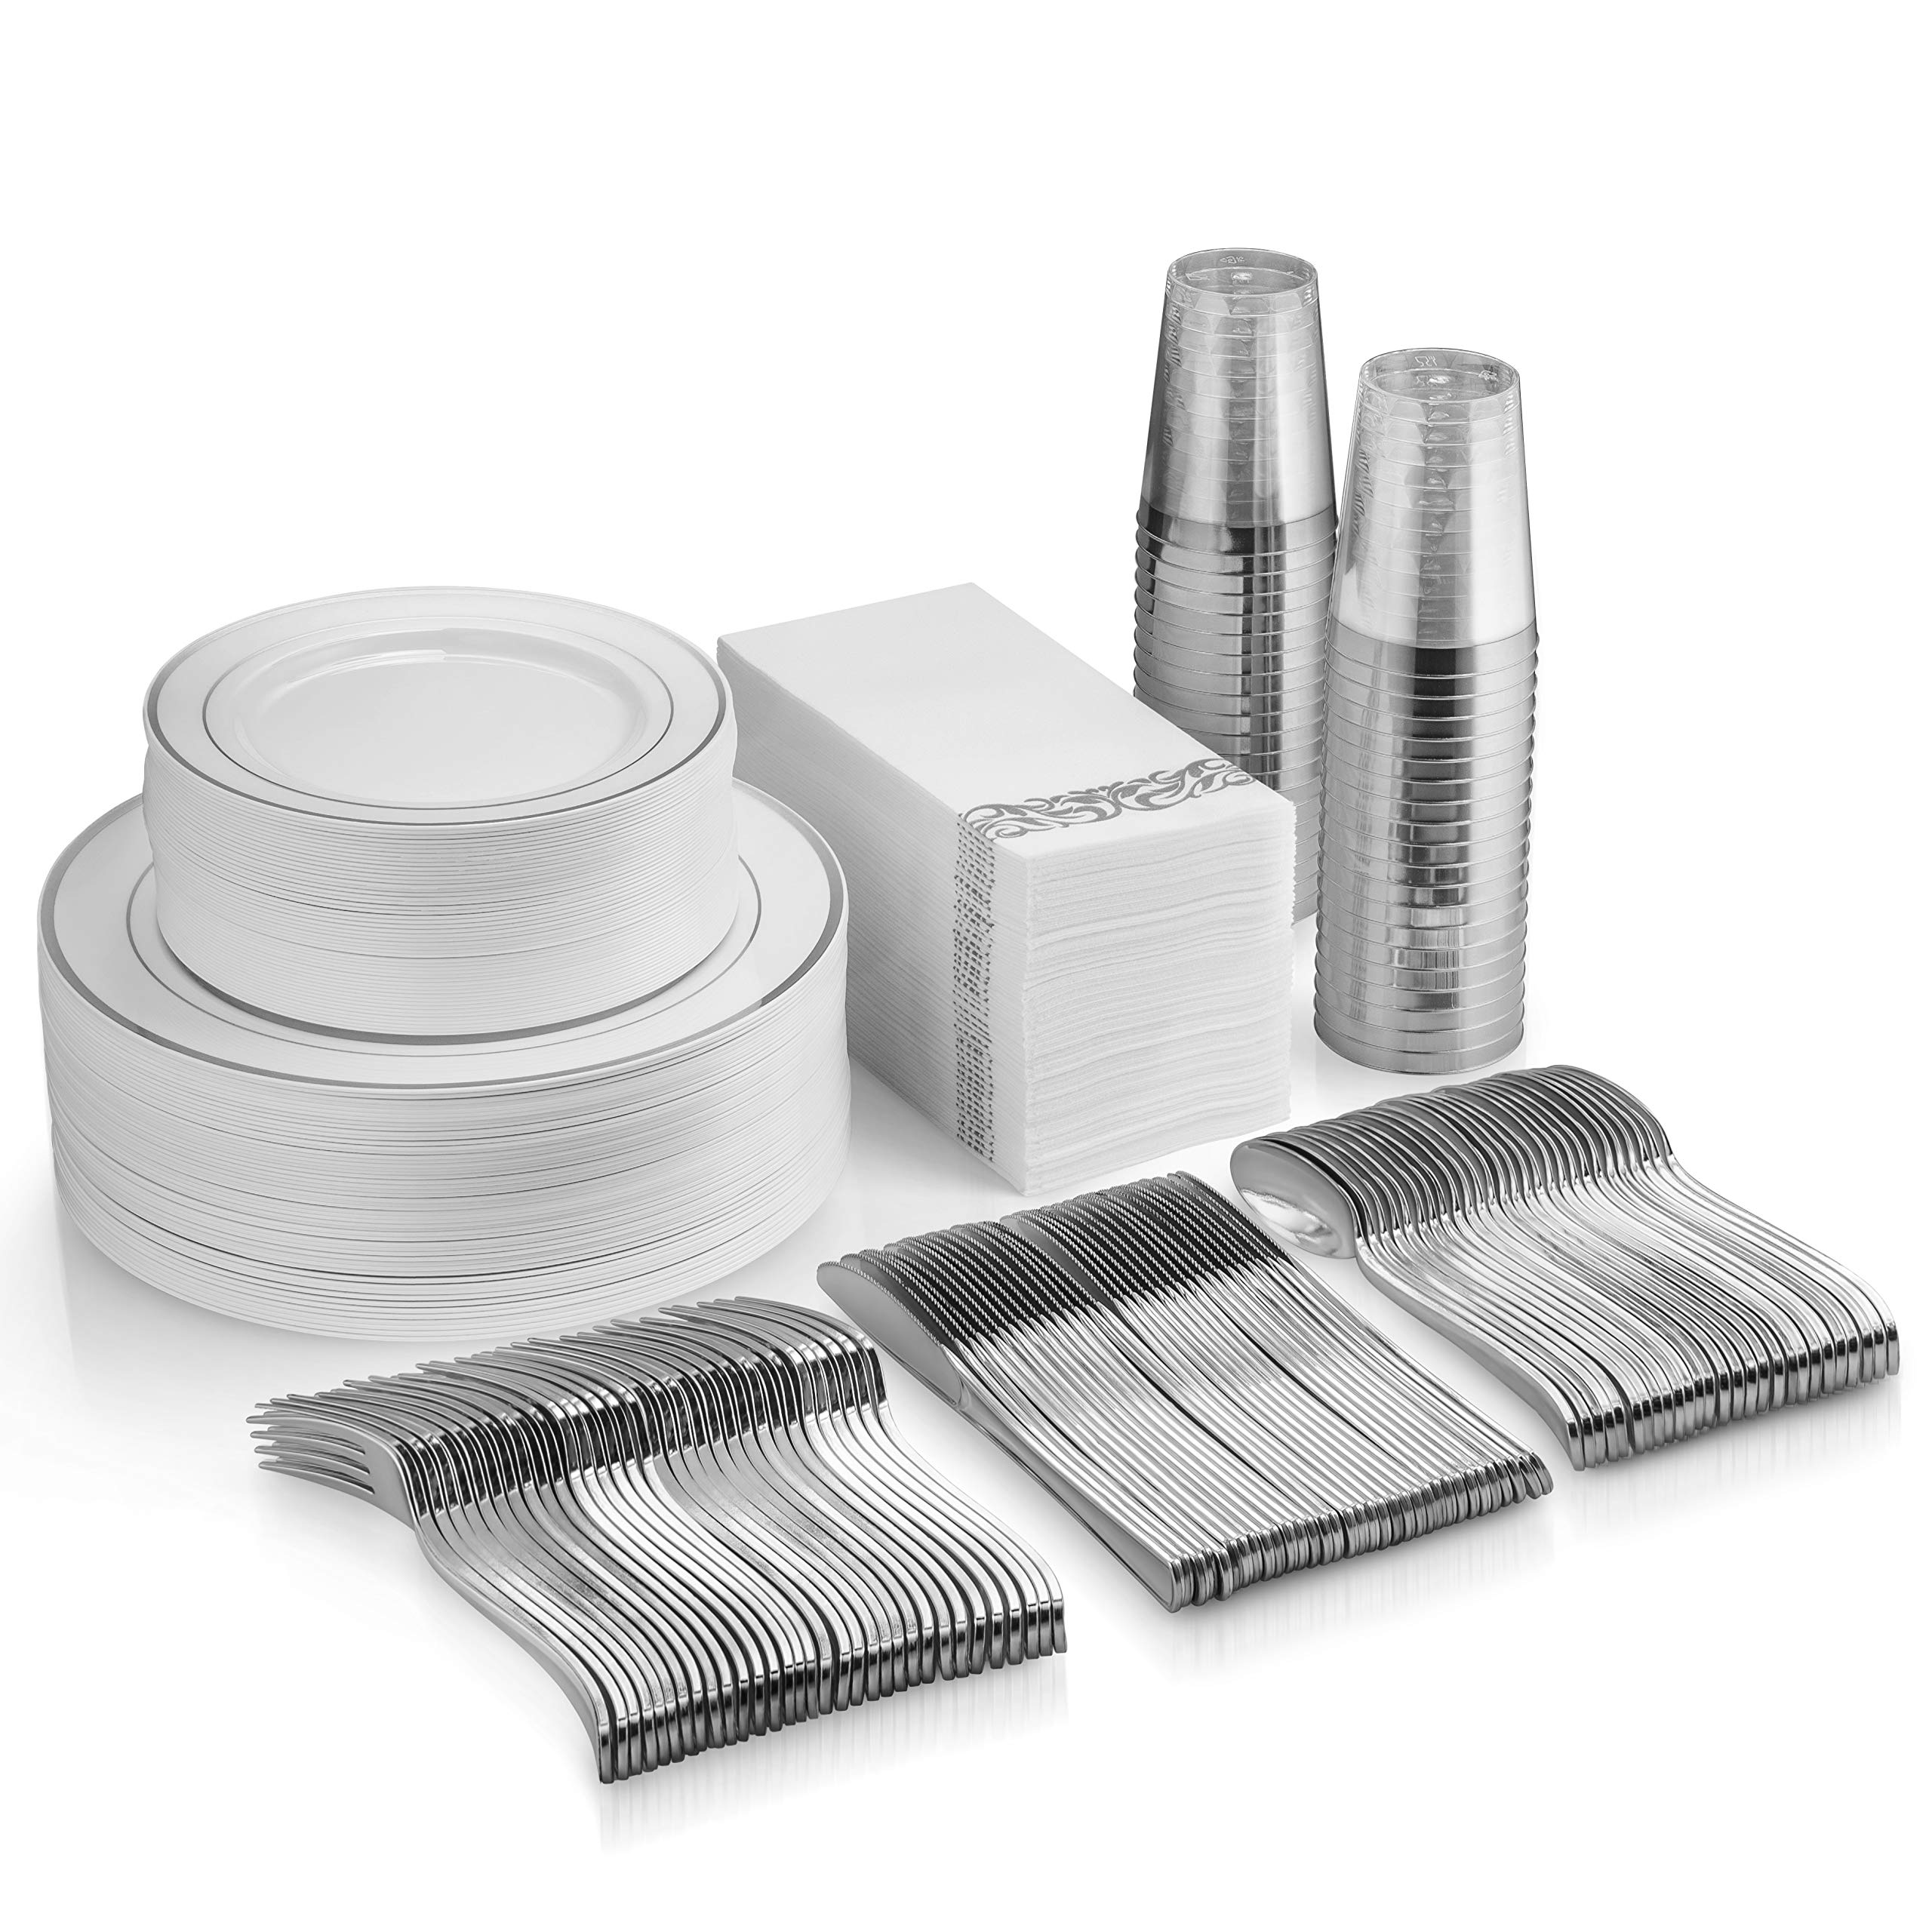 350 Piece Silver Dinnerware Set - 100 Silver Rim Plastic Plates - 50 Silver Plastic Silverware - 50 Silver Plastic Cups - 50 Linen Like Silver Paper Napkins, 50 Guest Disposable Silver Dinnerware Set by Munfix